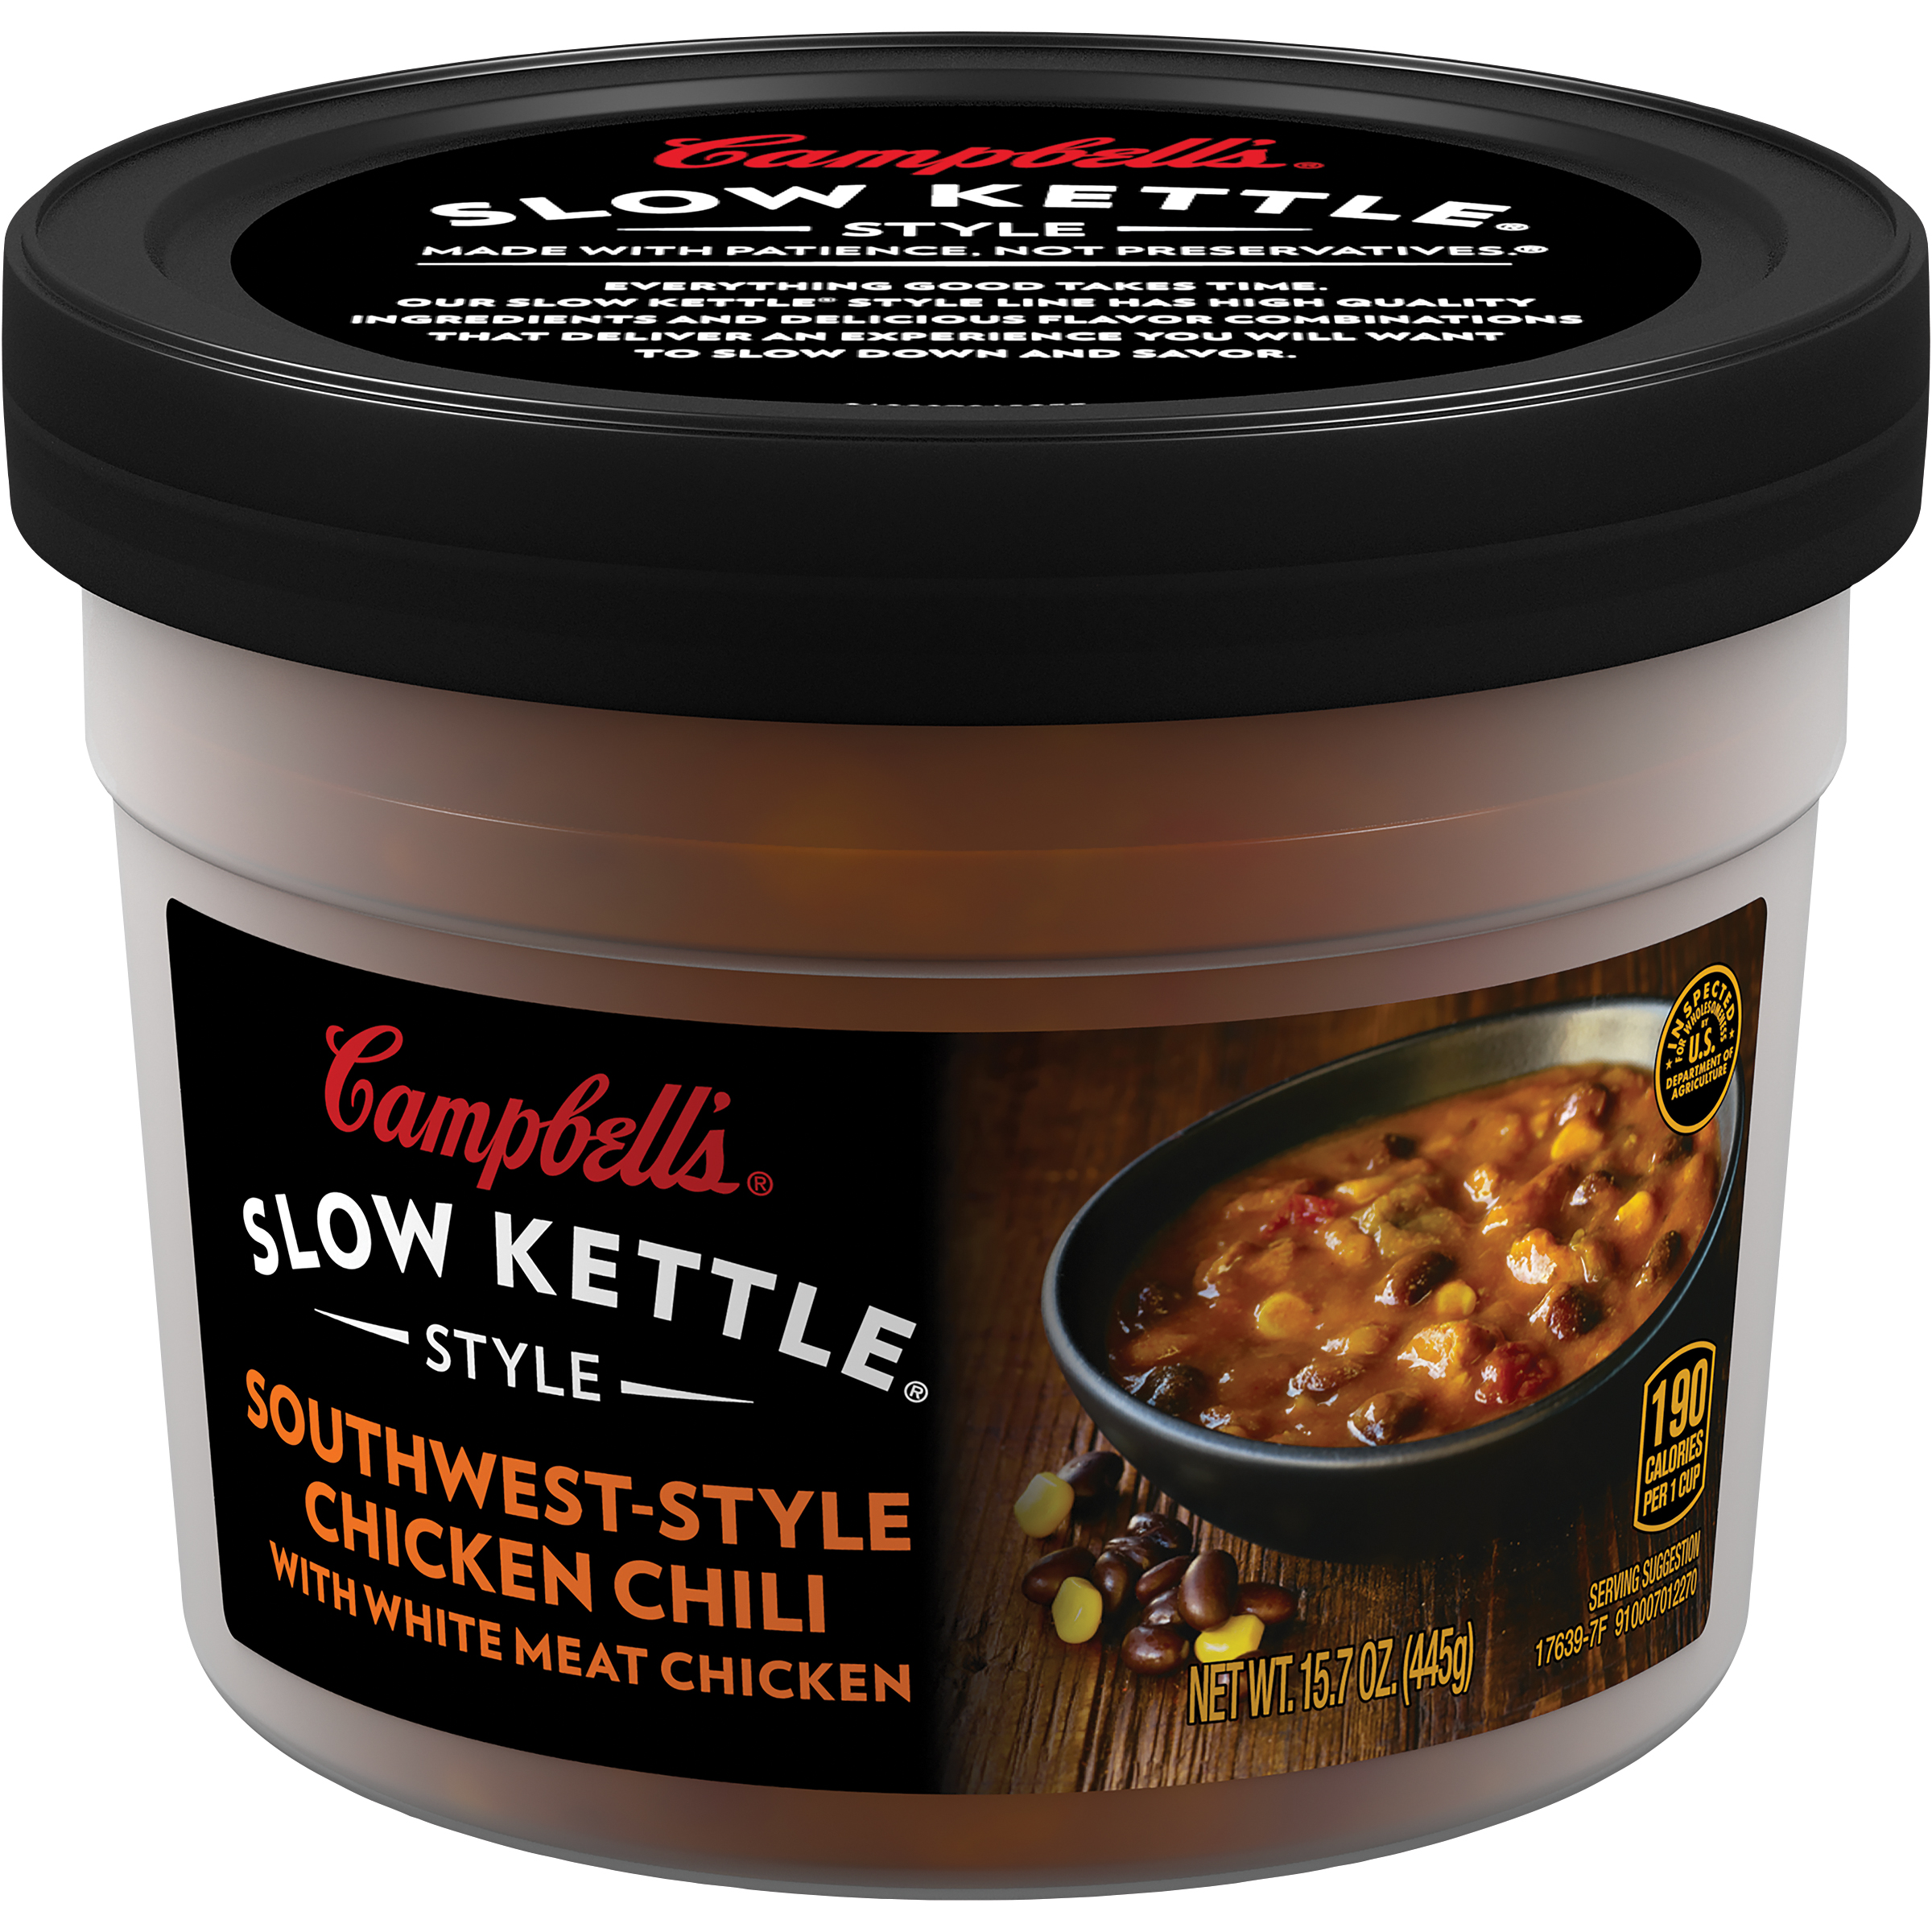 Campbell's Slow Kettle Style Southwest-Style Chicken Chili 15.7oz